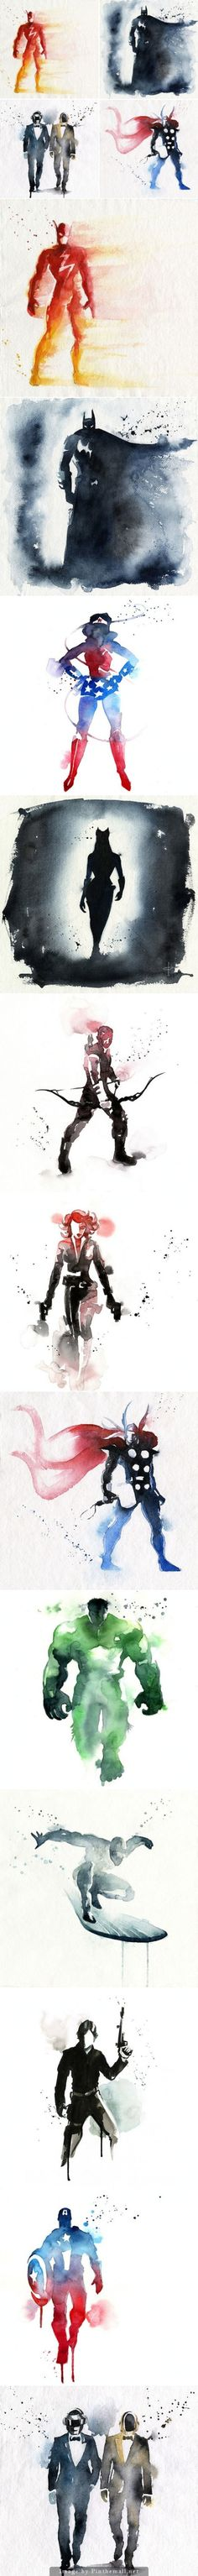 Watercolor Super Heroes Here sumptuous portraits storey superheroes made ​​watercolor by French illustrator Blule.